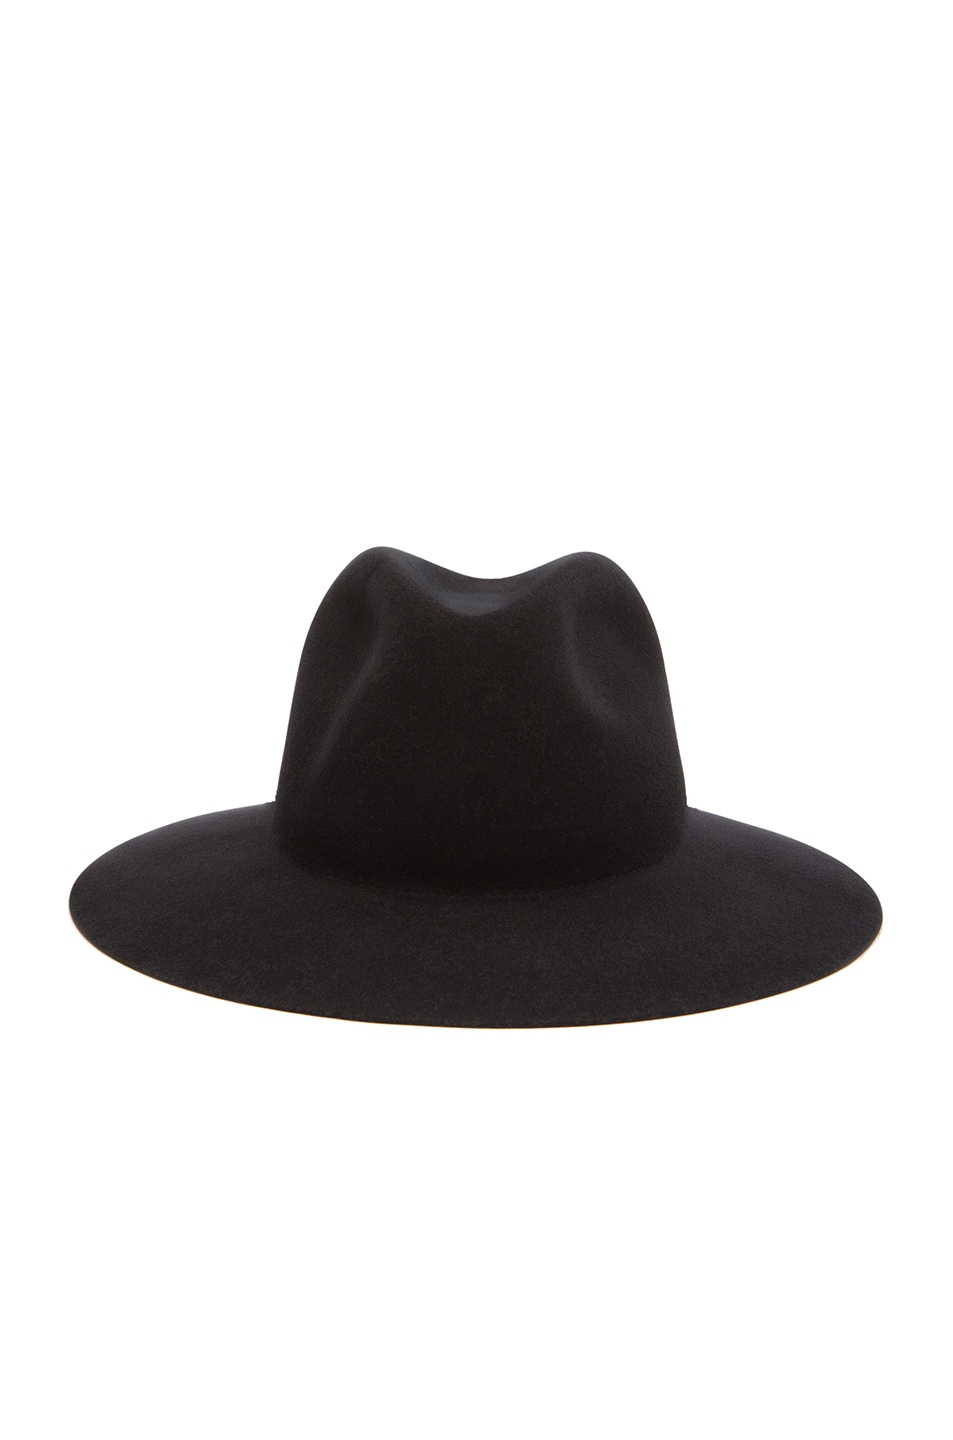 Image 1 of Rag & Bone Range Fedora Hat in Black